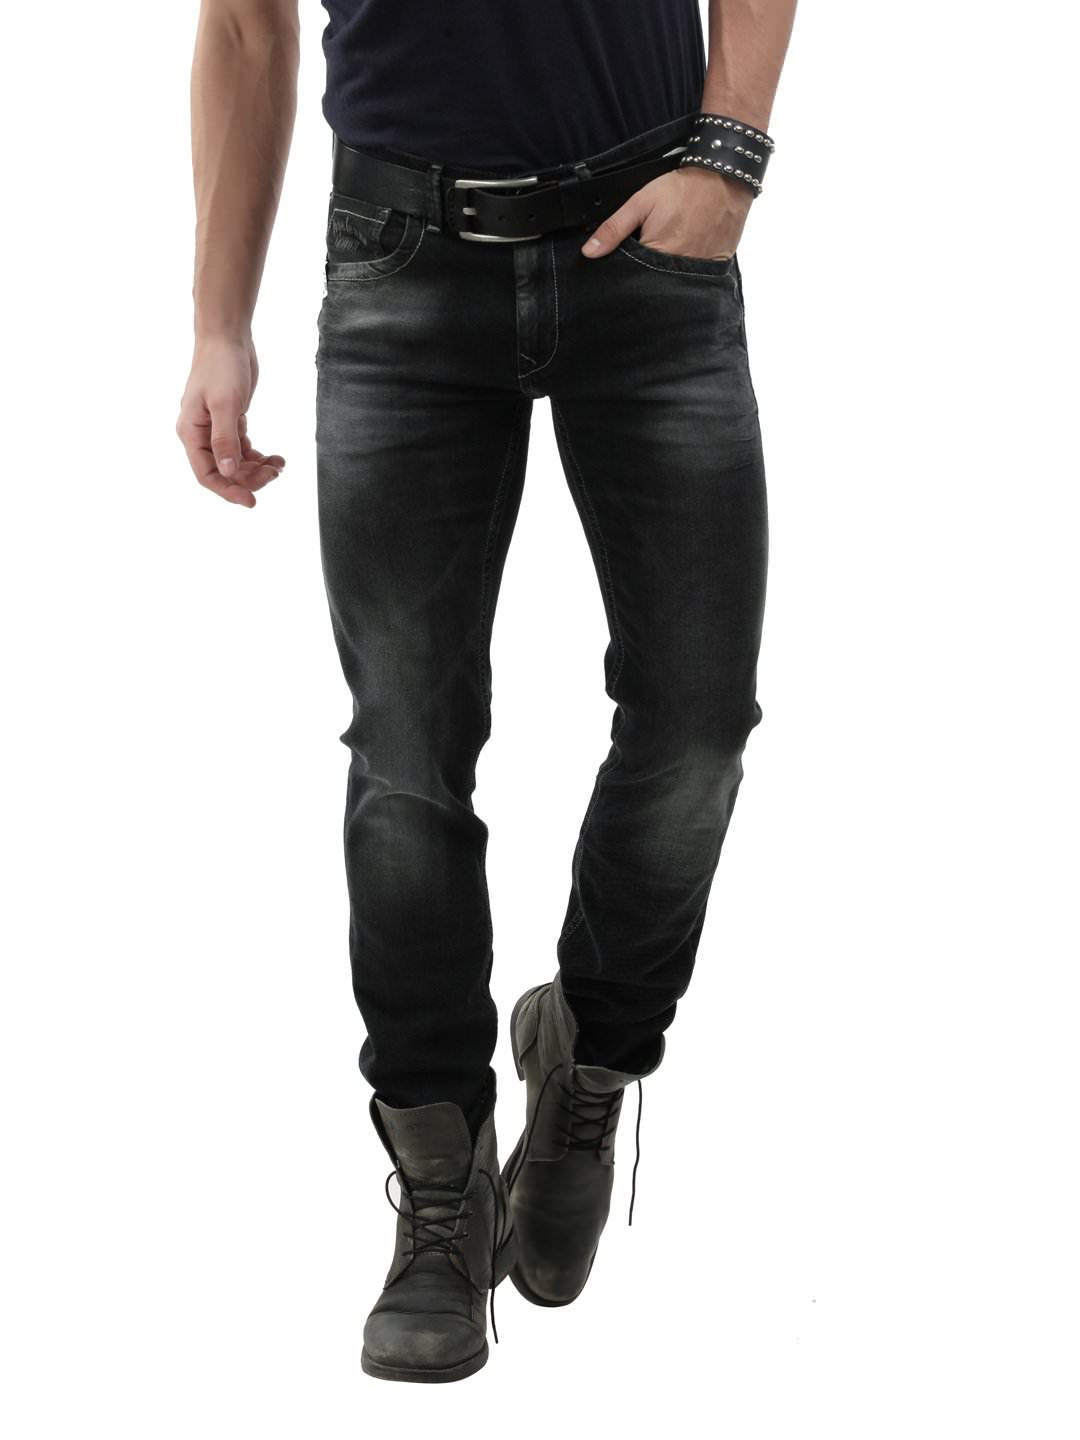 Find great deals on eBay for black skinny jeans men. Shop with confidence.